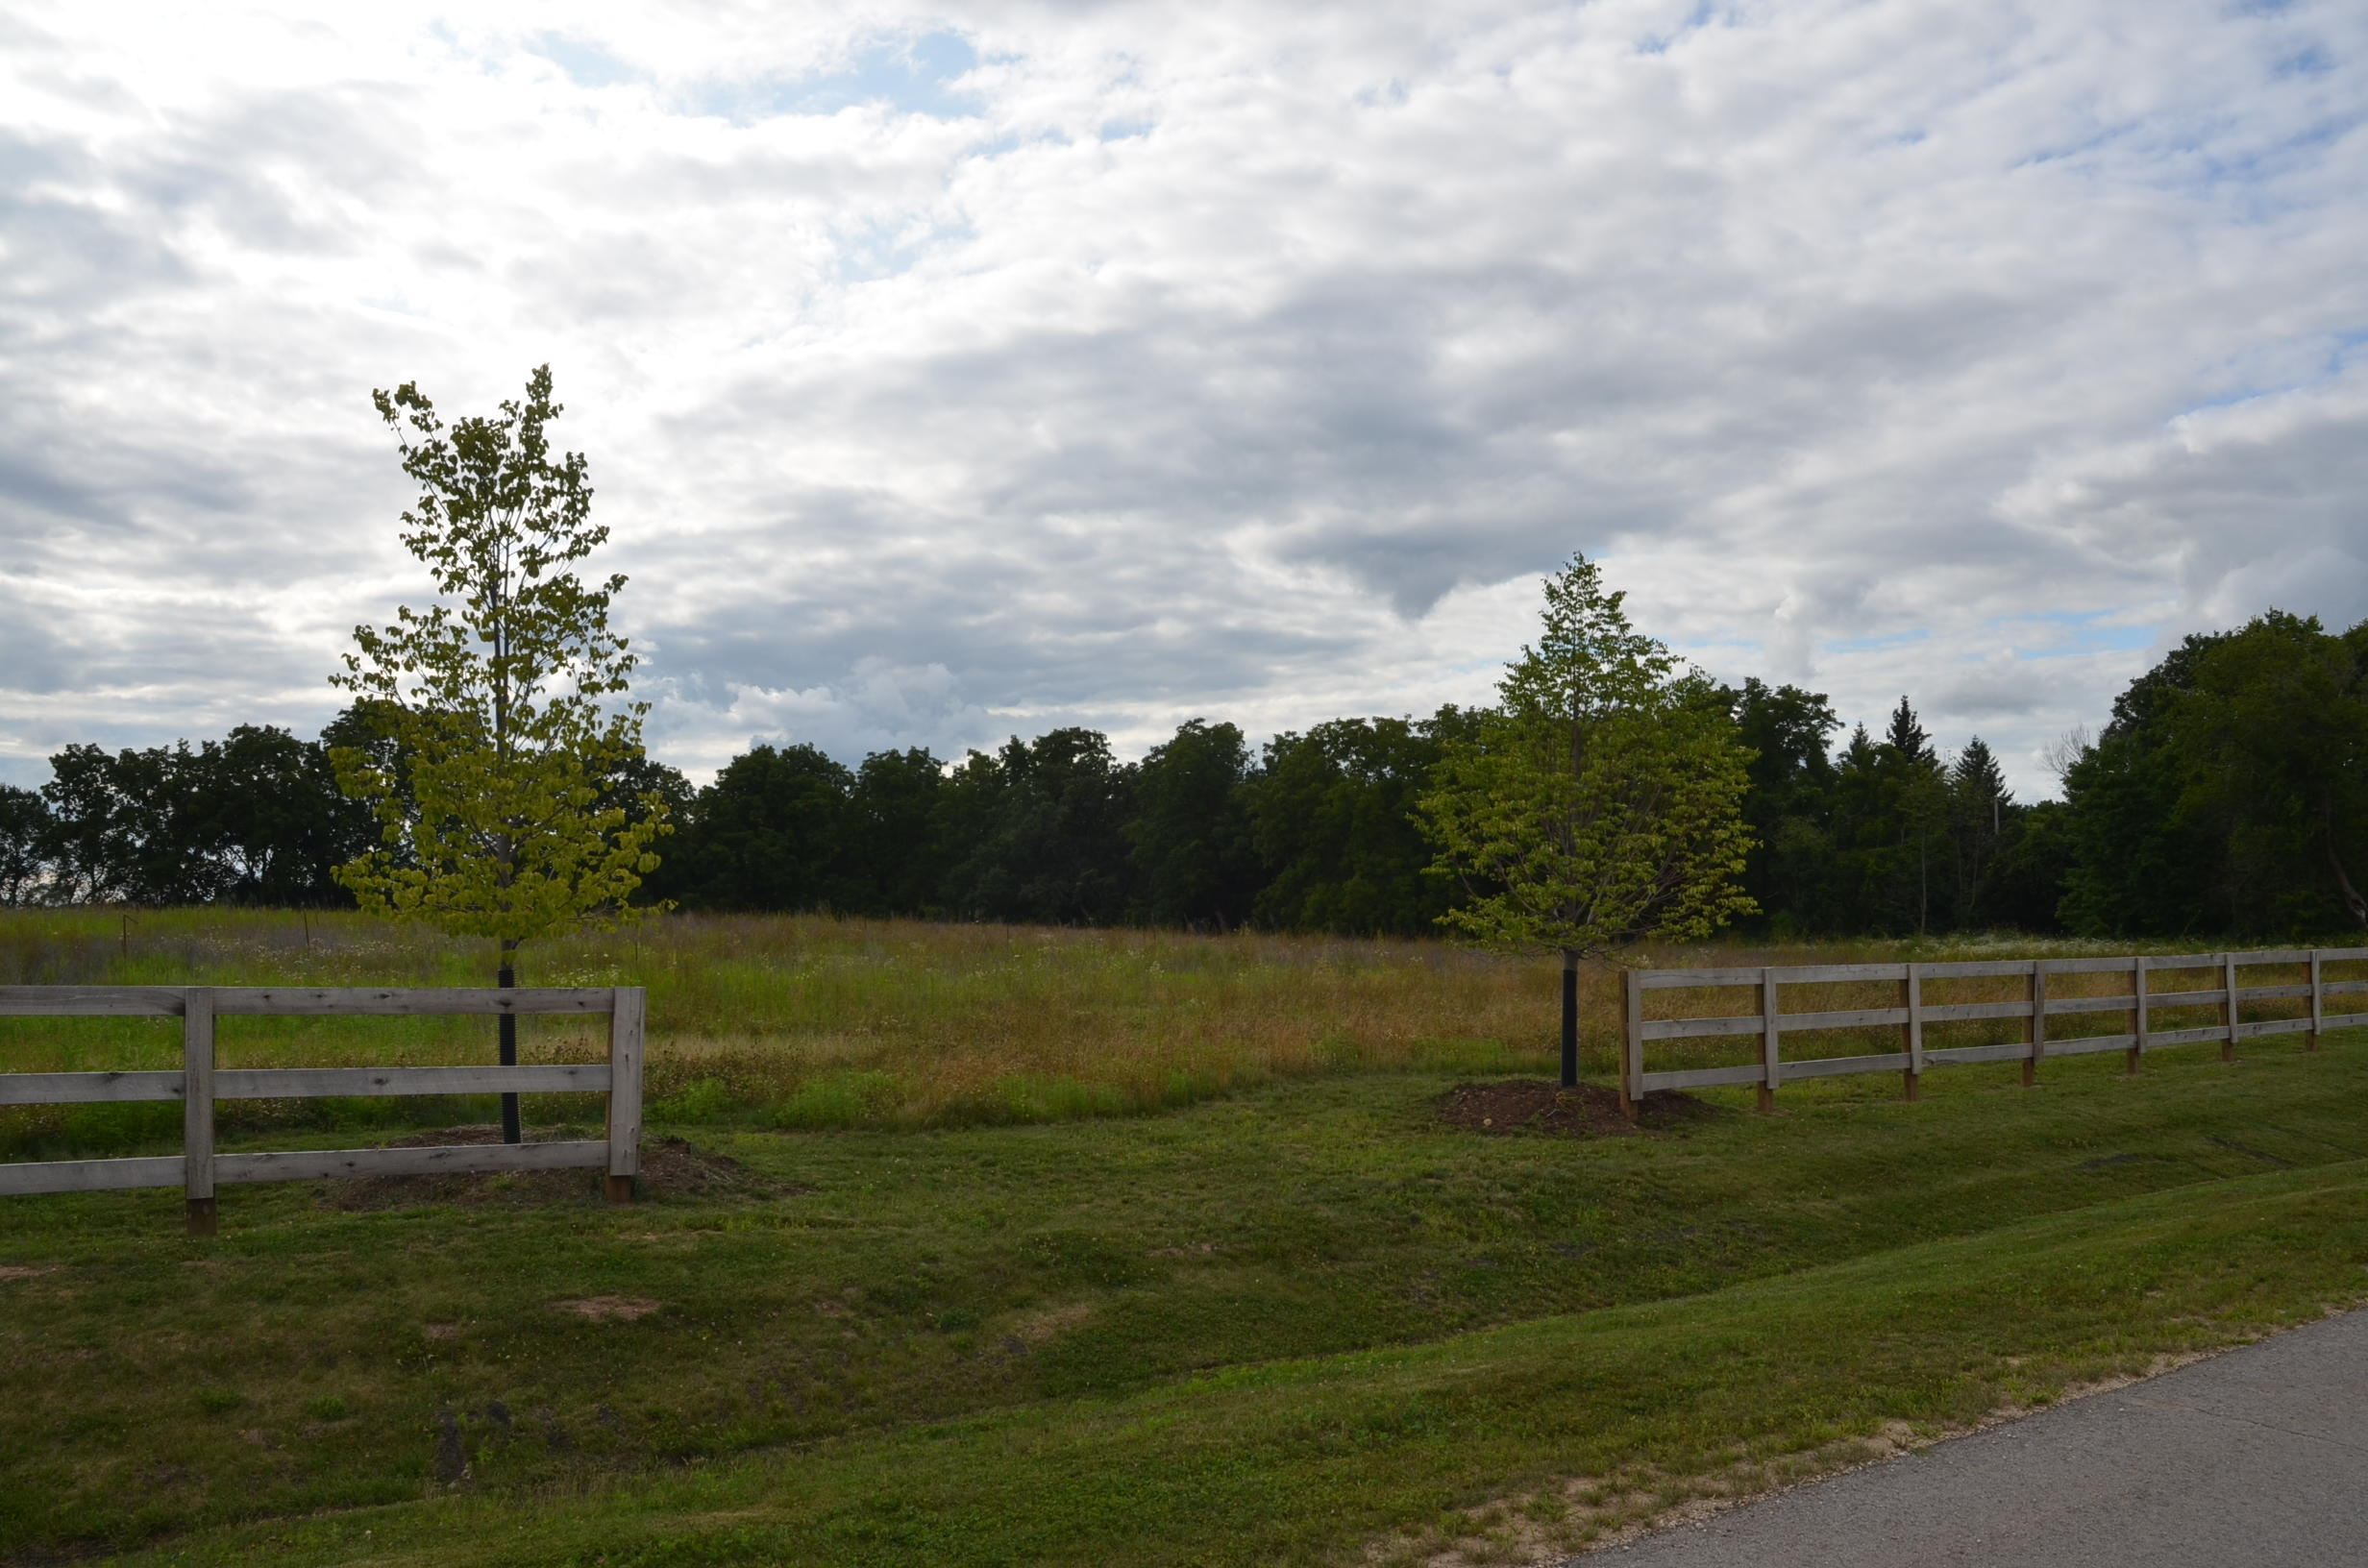 W339S177 Foxtail Ct, Delafield, Wisconsin 53018, ,Vacant Land,For Sale,Foxtail Ct,1647057